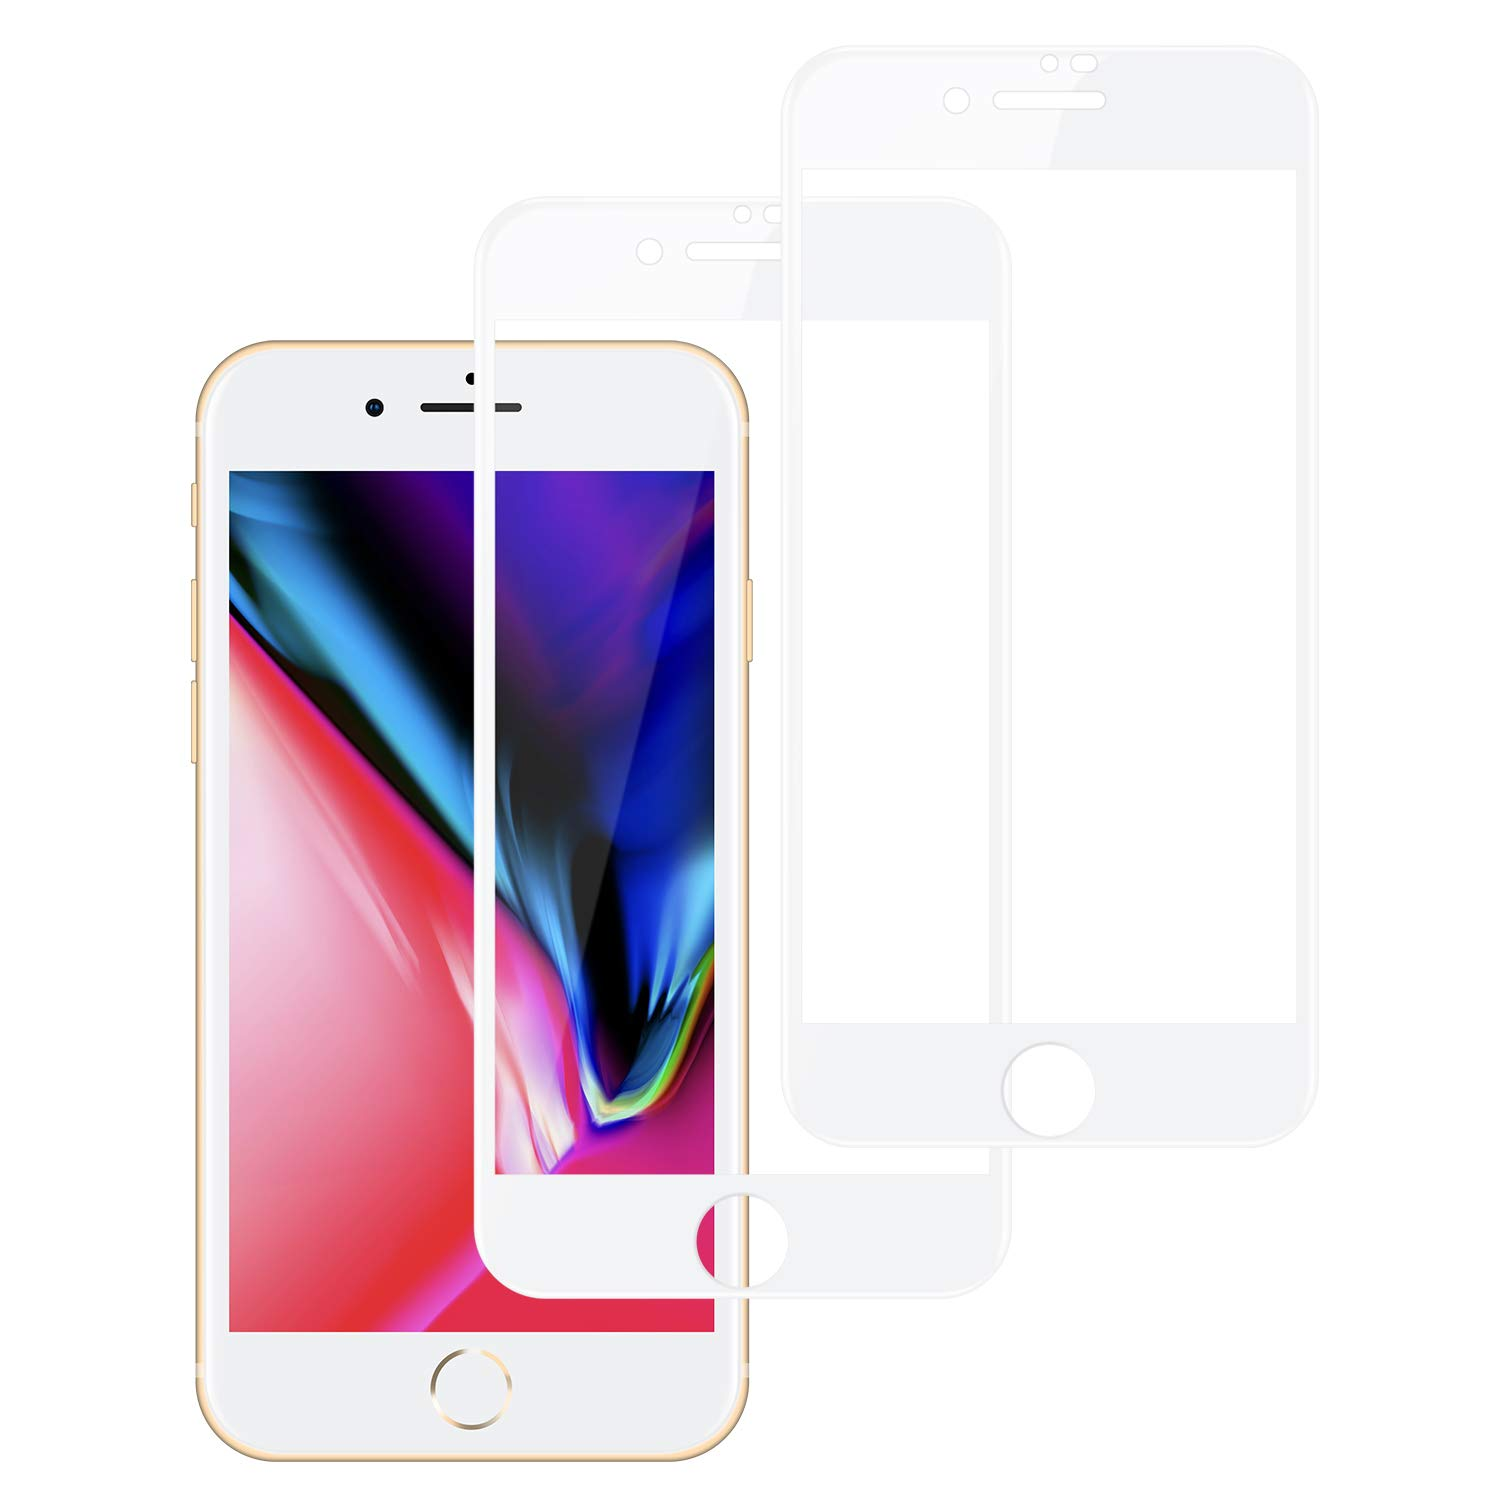 iPhone 7/8 Screen Protector Tempered Glass (2 Packs), 6D Screen Protector, High Clear, Anti Impact Scratch and Fingerprint, Case Friendly Compatible for iPhone 7/8 product image